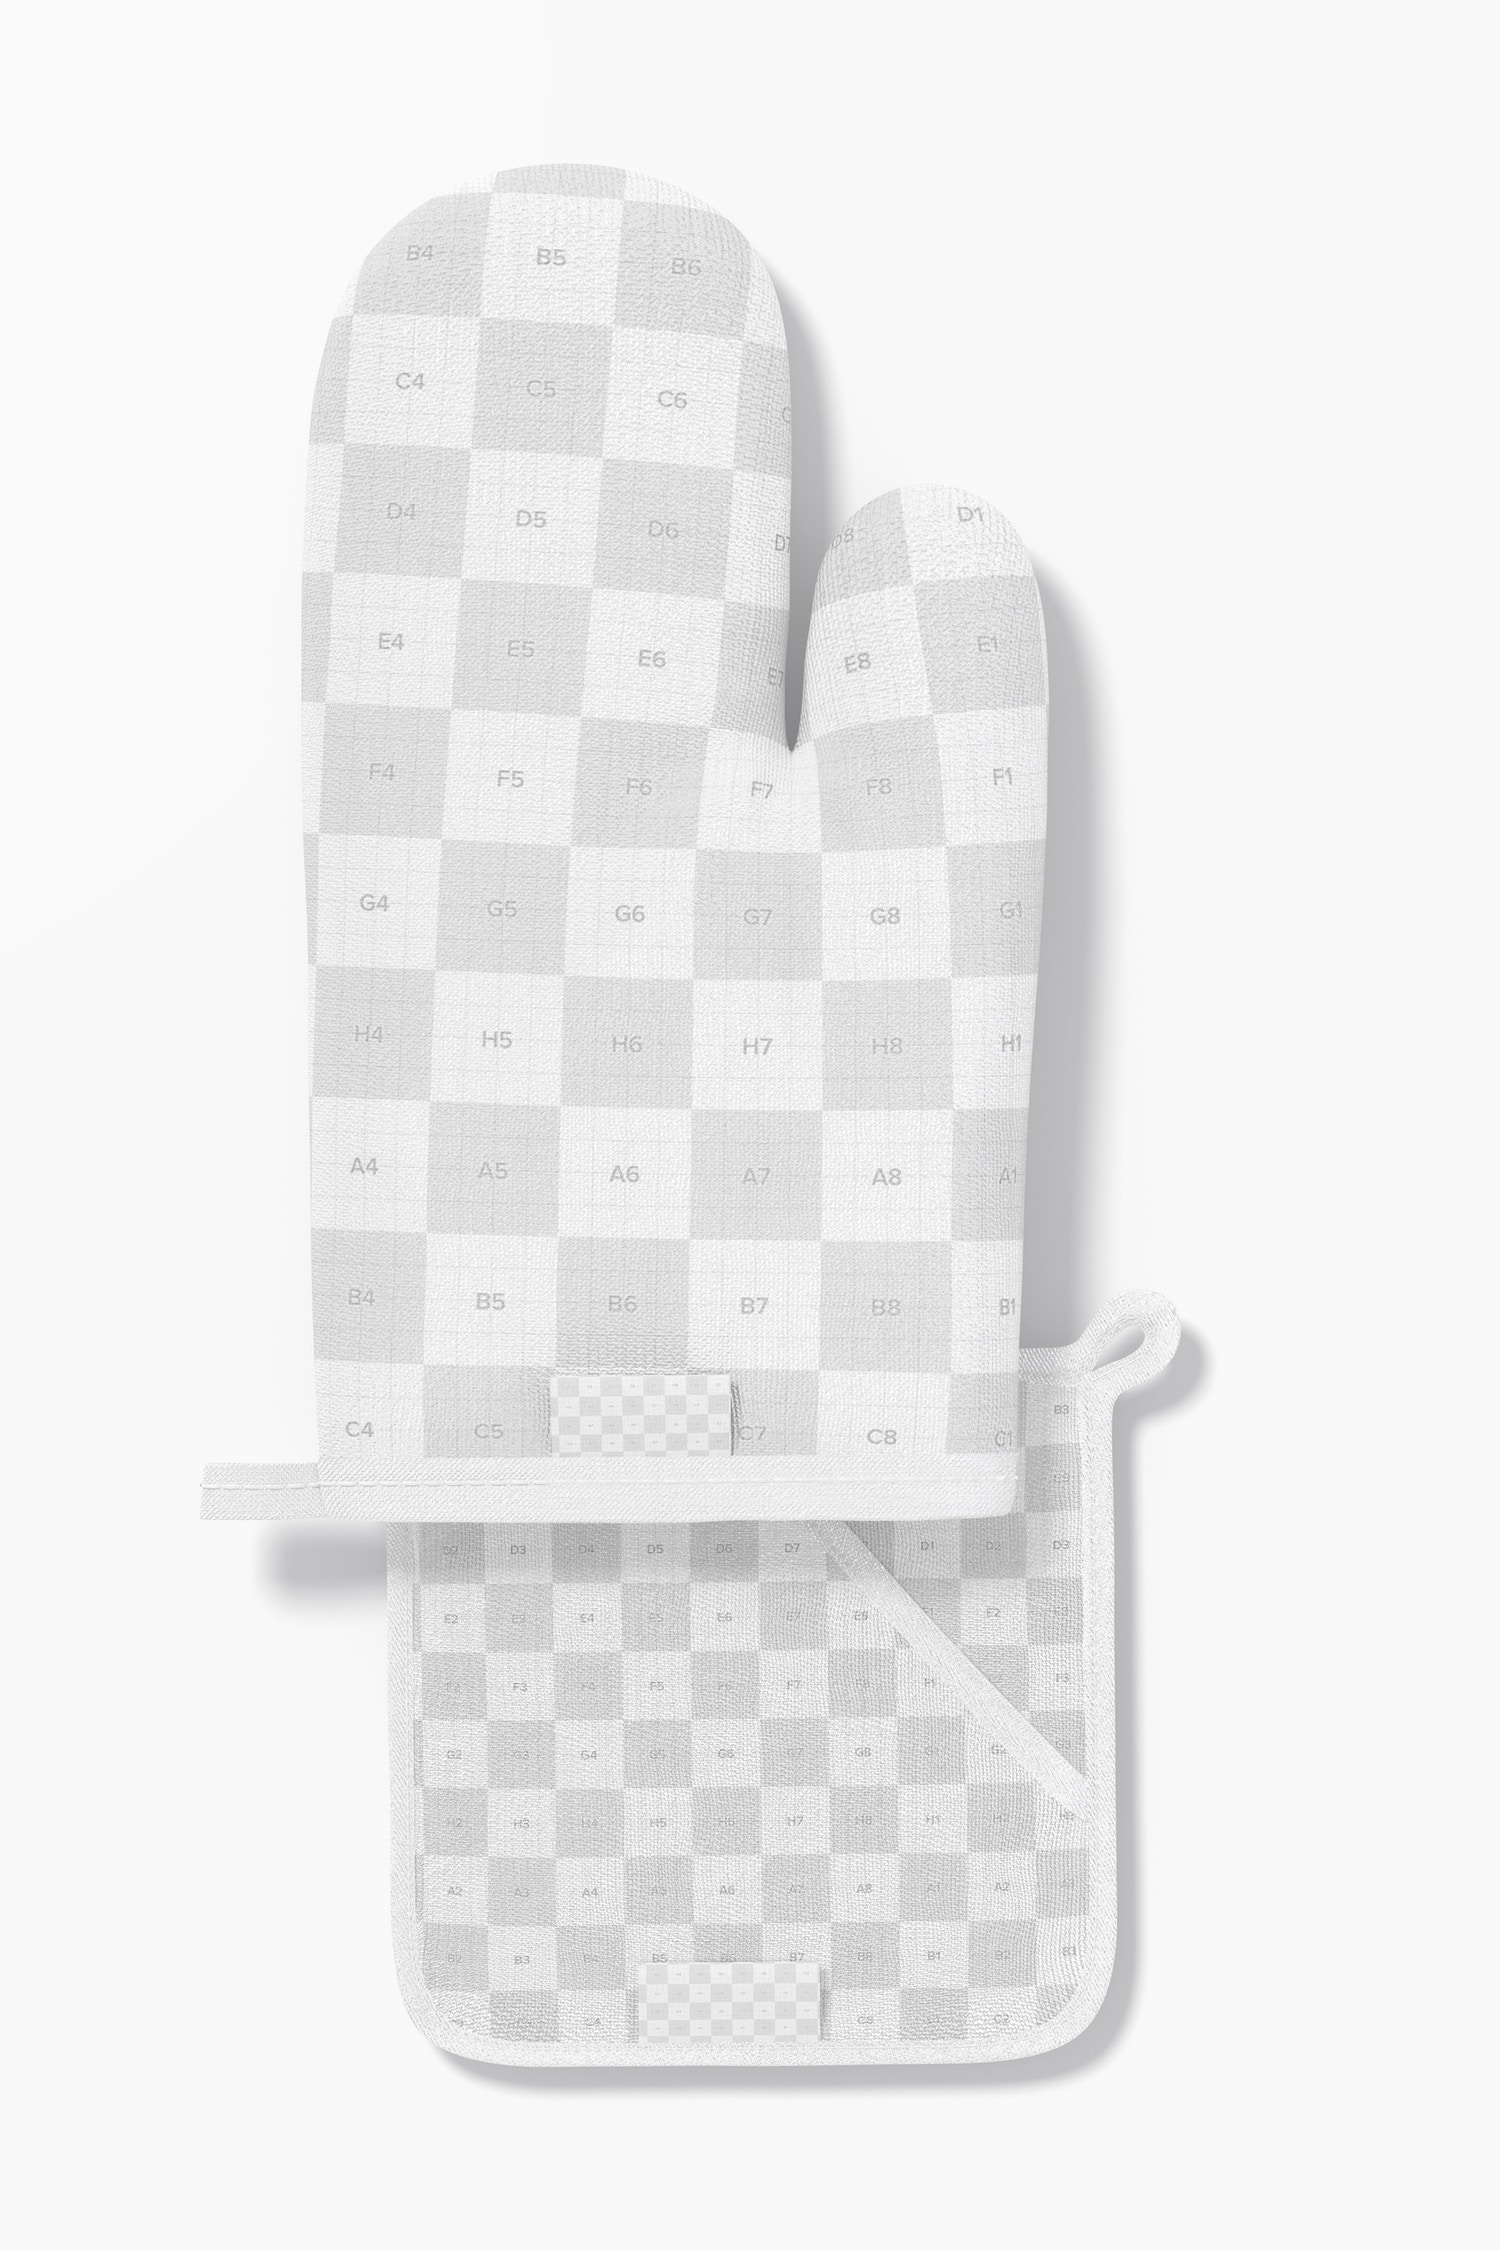 Oven Mitt and Potholder Mockup, Top View